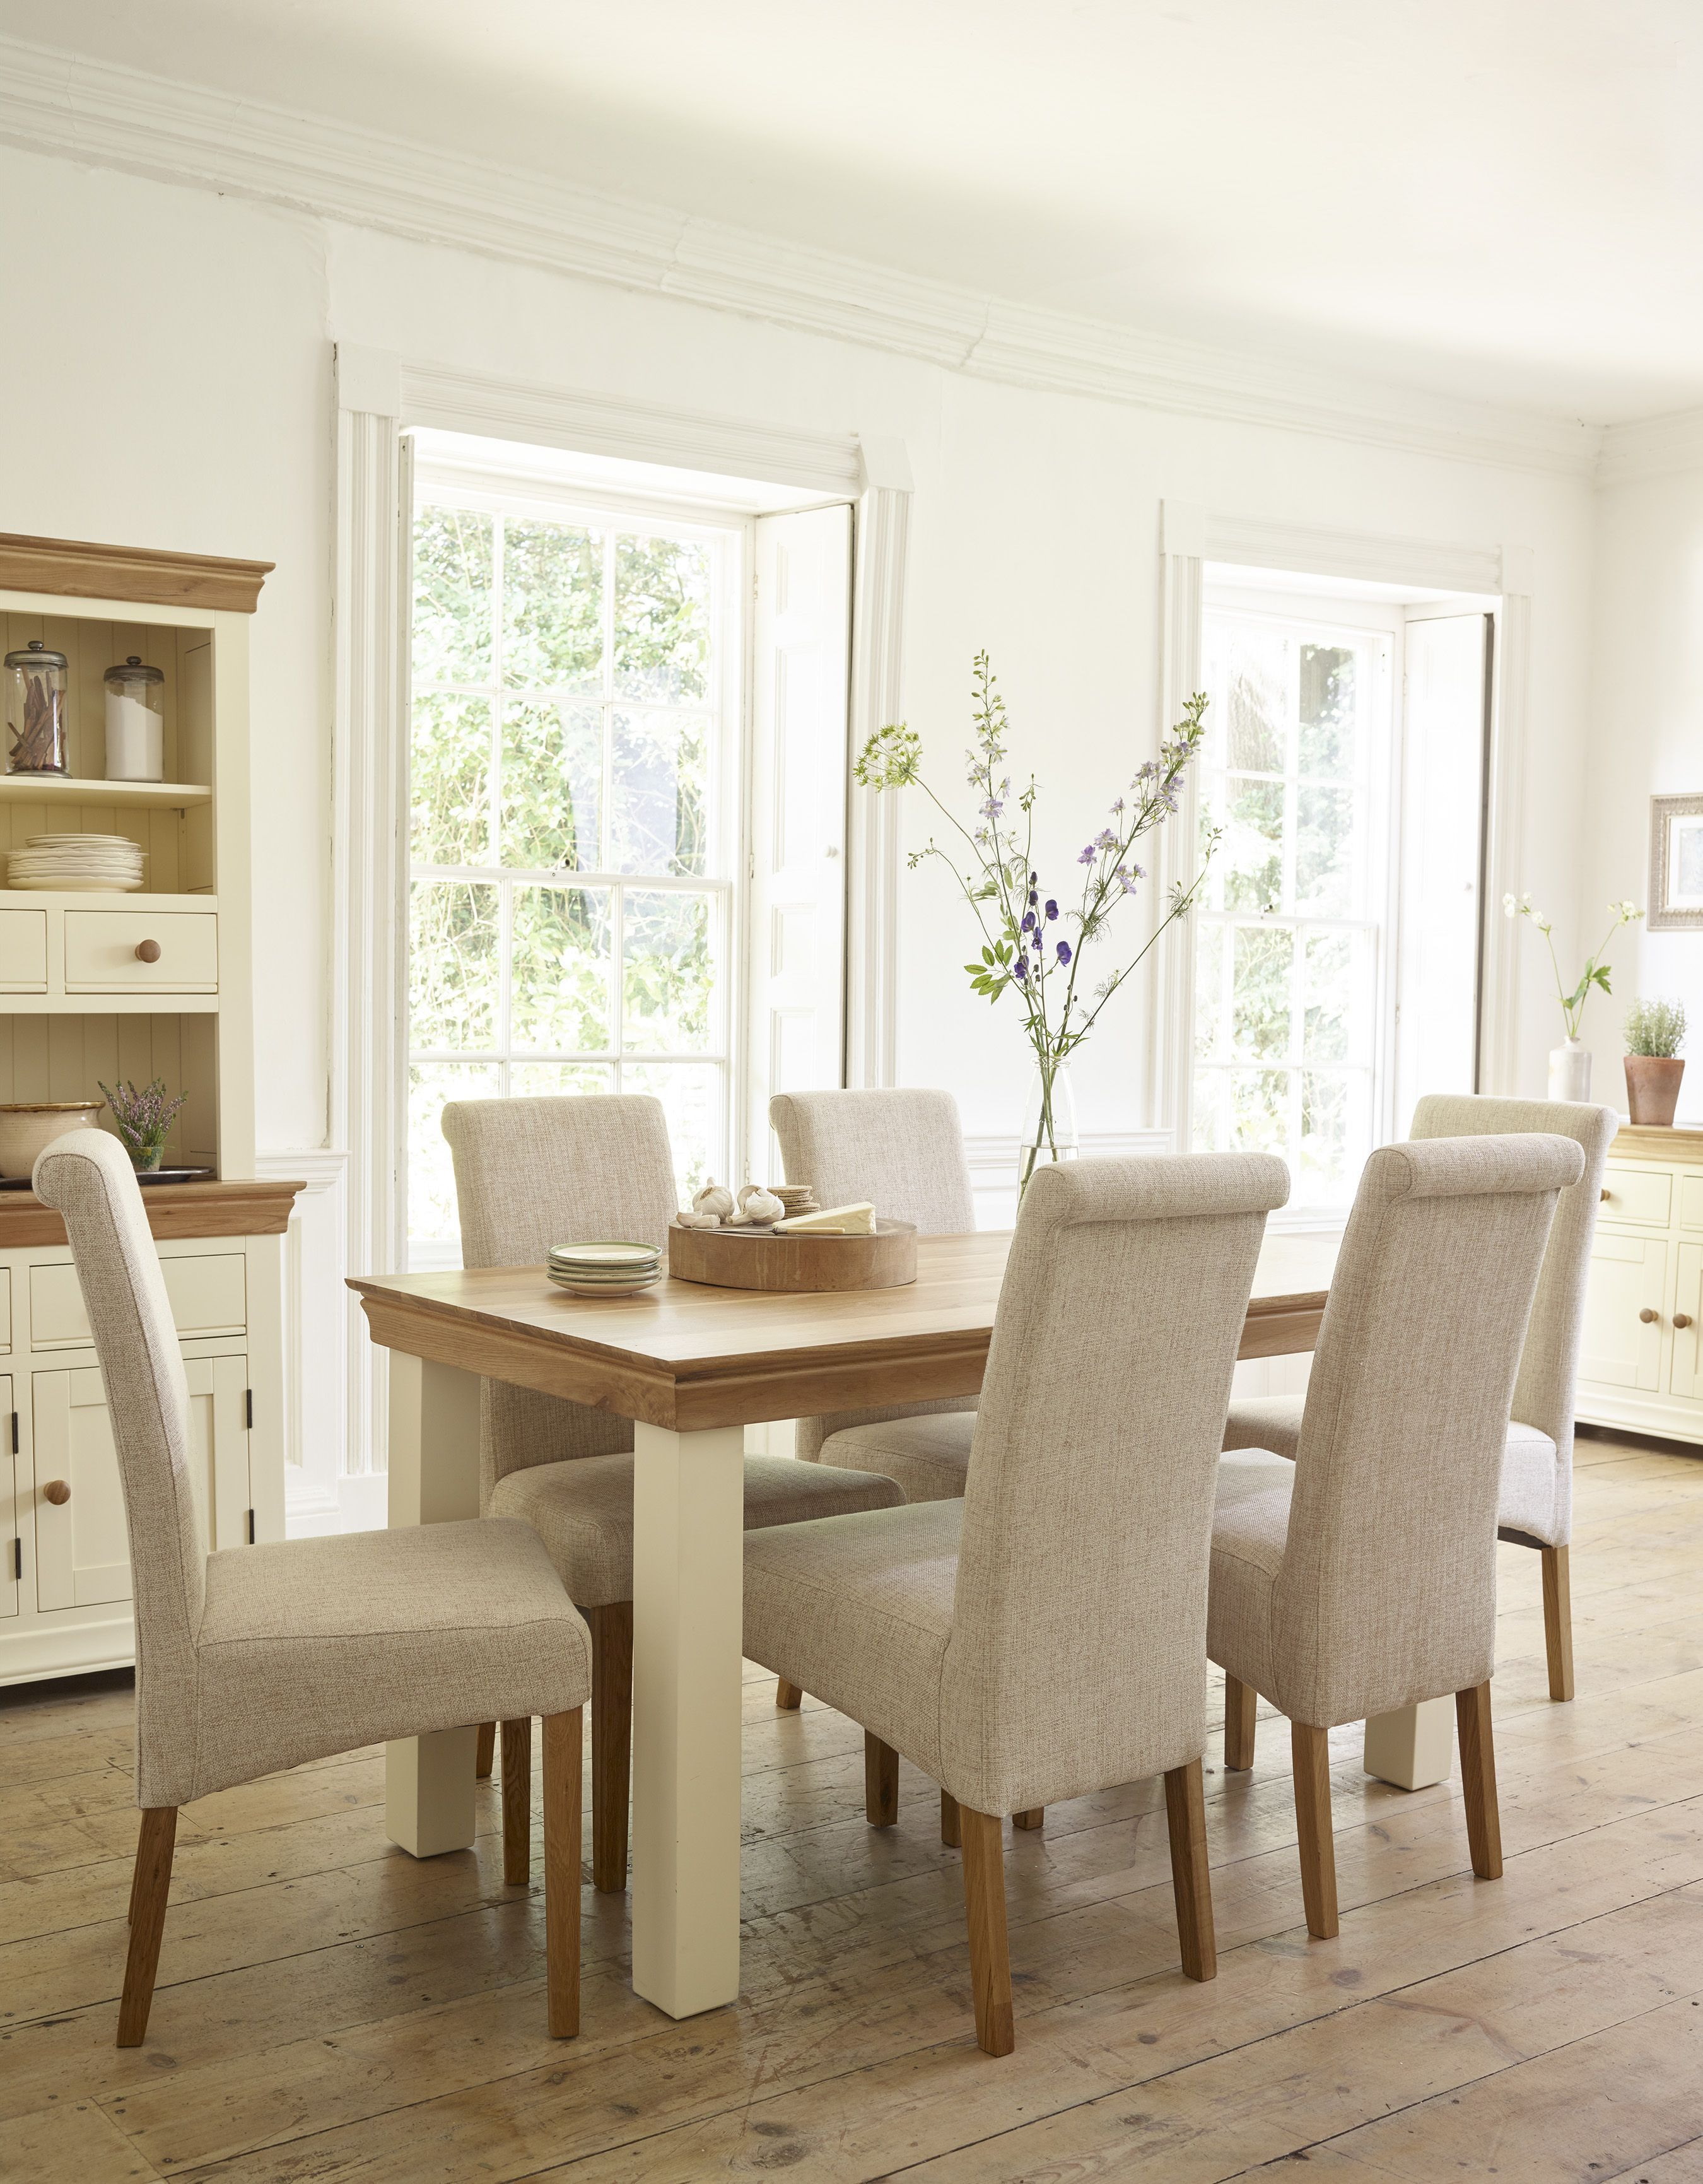 Oak Furniture Land Country Cottage Range Giving A Lovely Feel To